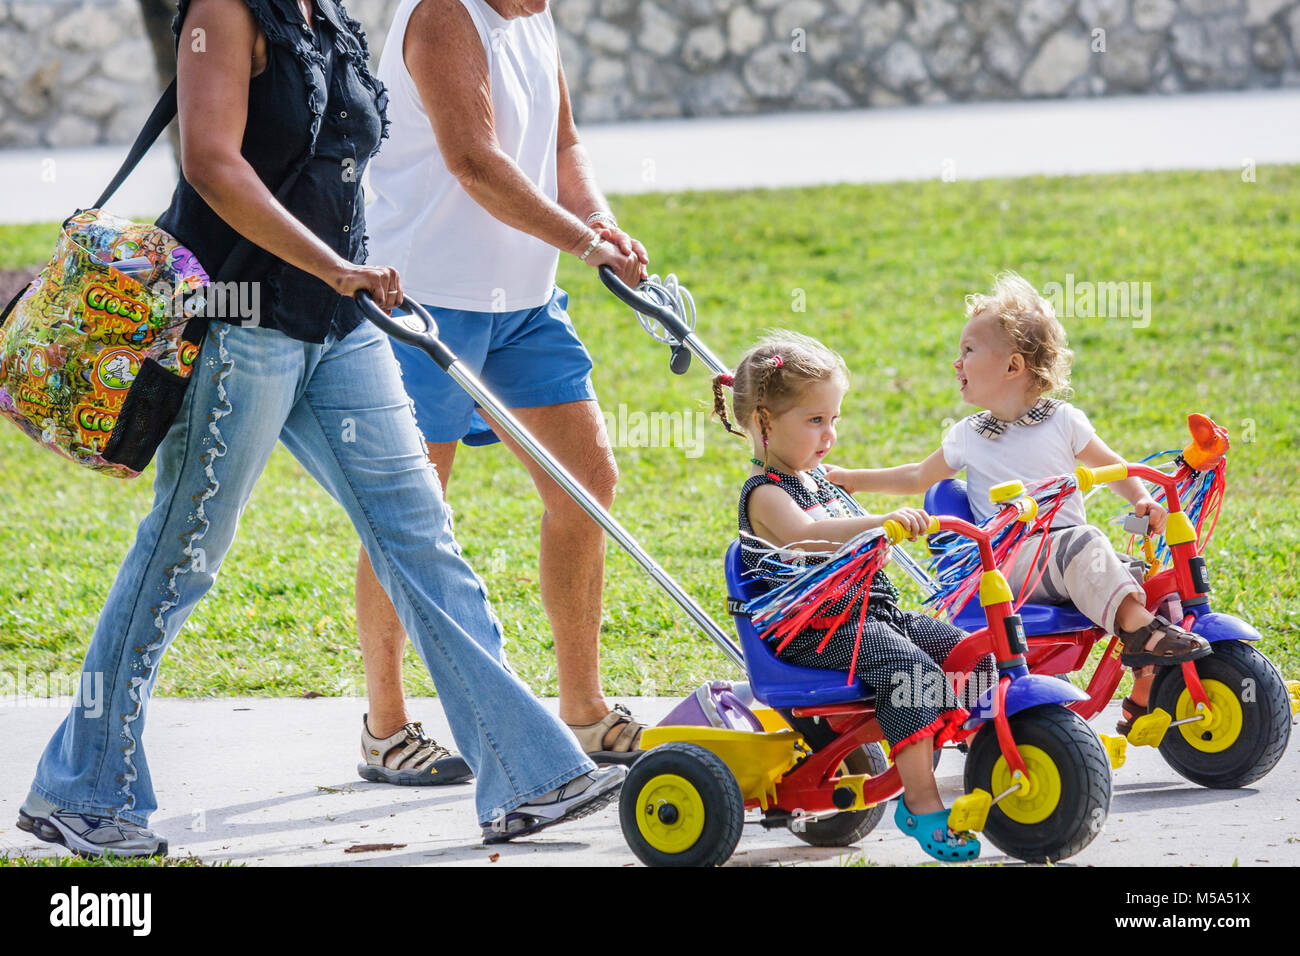 Lummus Park toddlers tricycles pushed Black nanny grandmother child care babysit outdoor - Stock Image